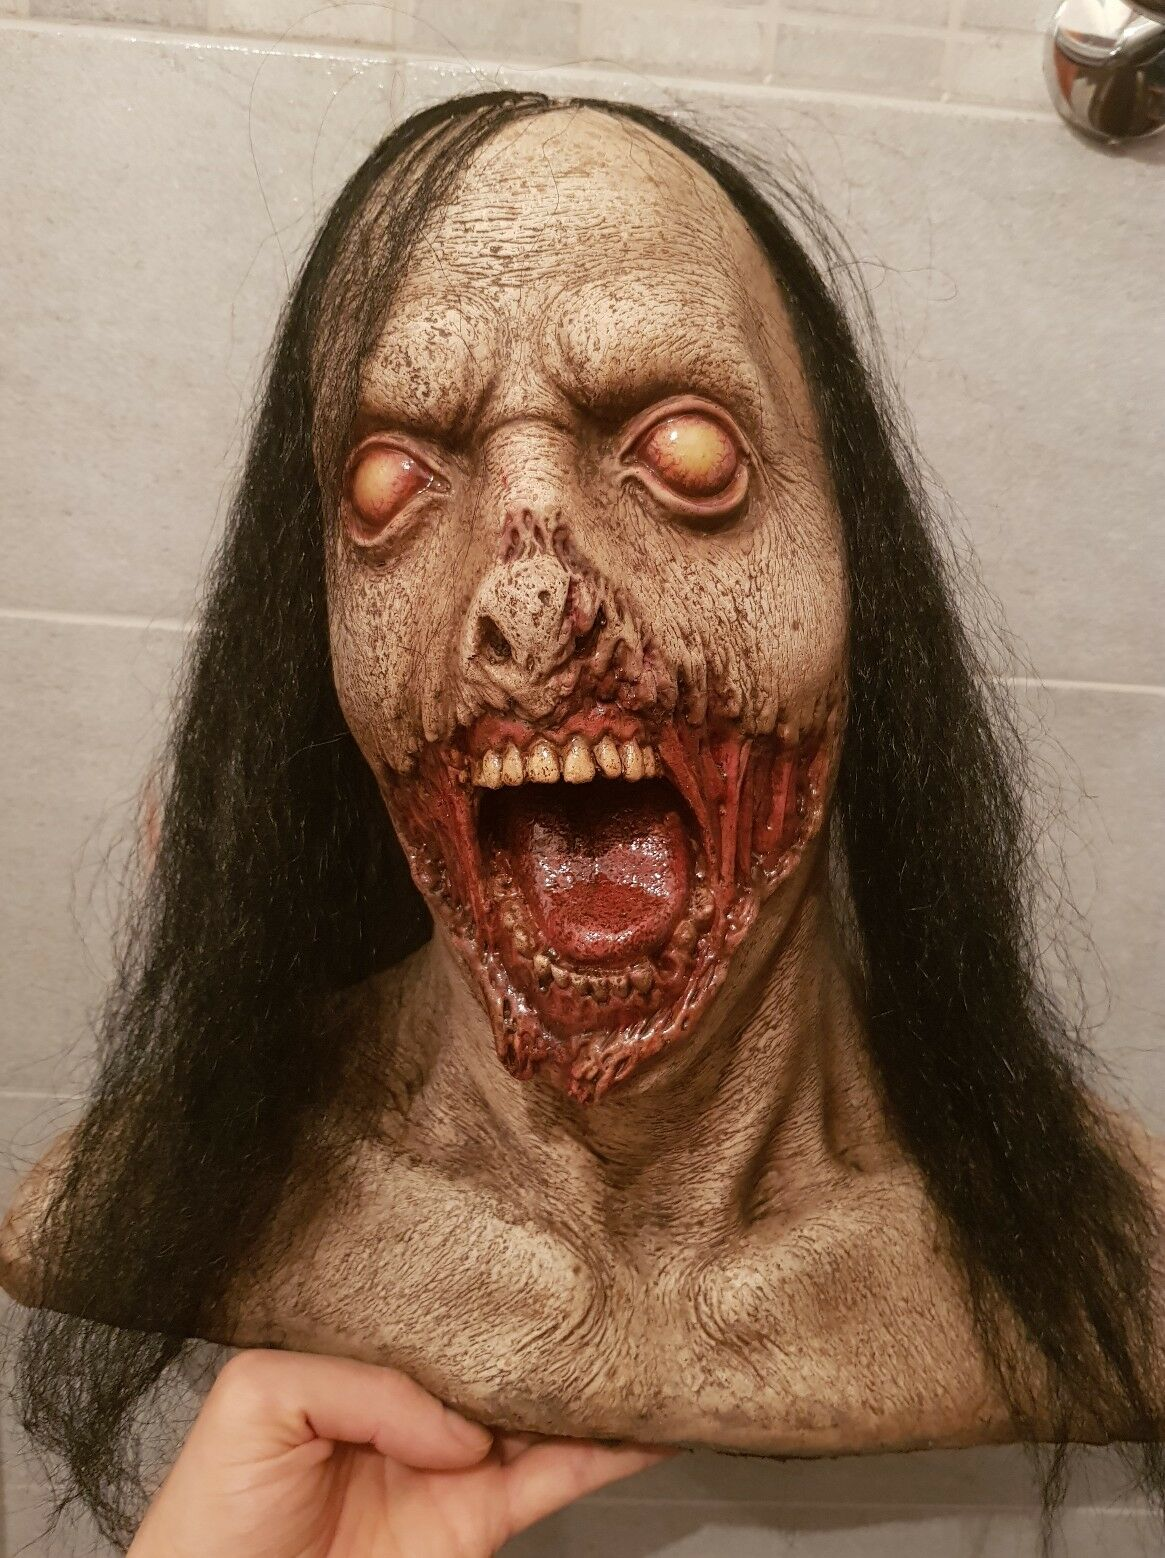 Life Größe Bust Bust-Größe 1 1 Zombie  The Walking Dead  Movie Art FX 37cm